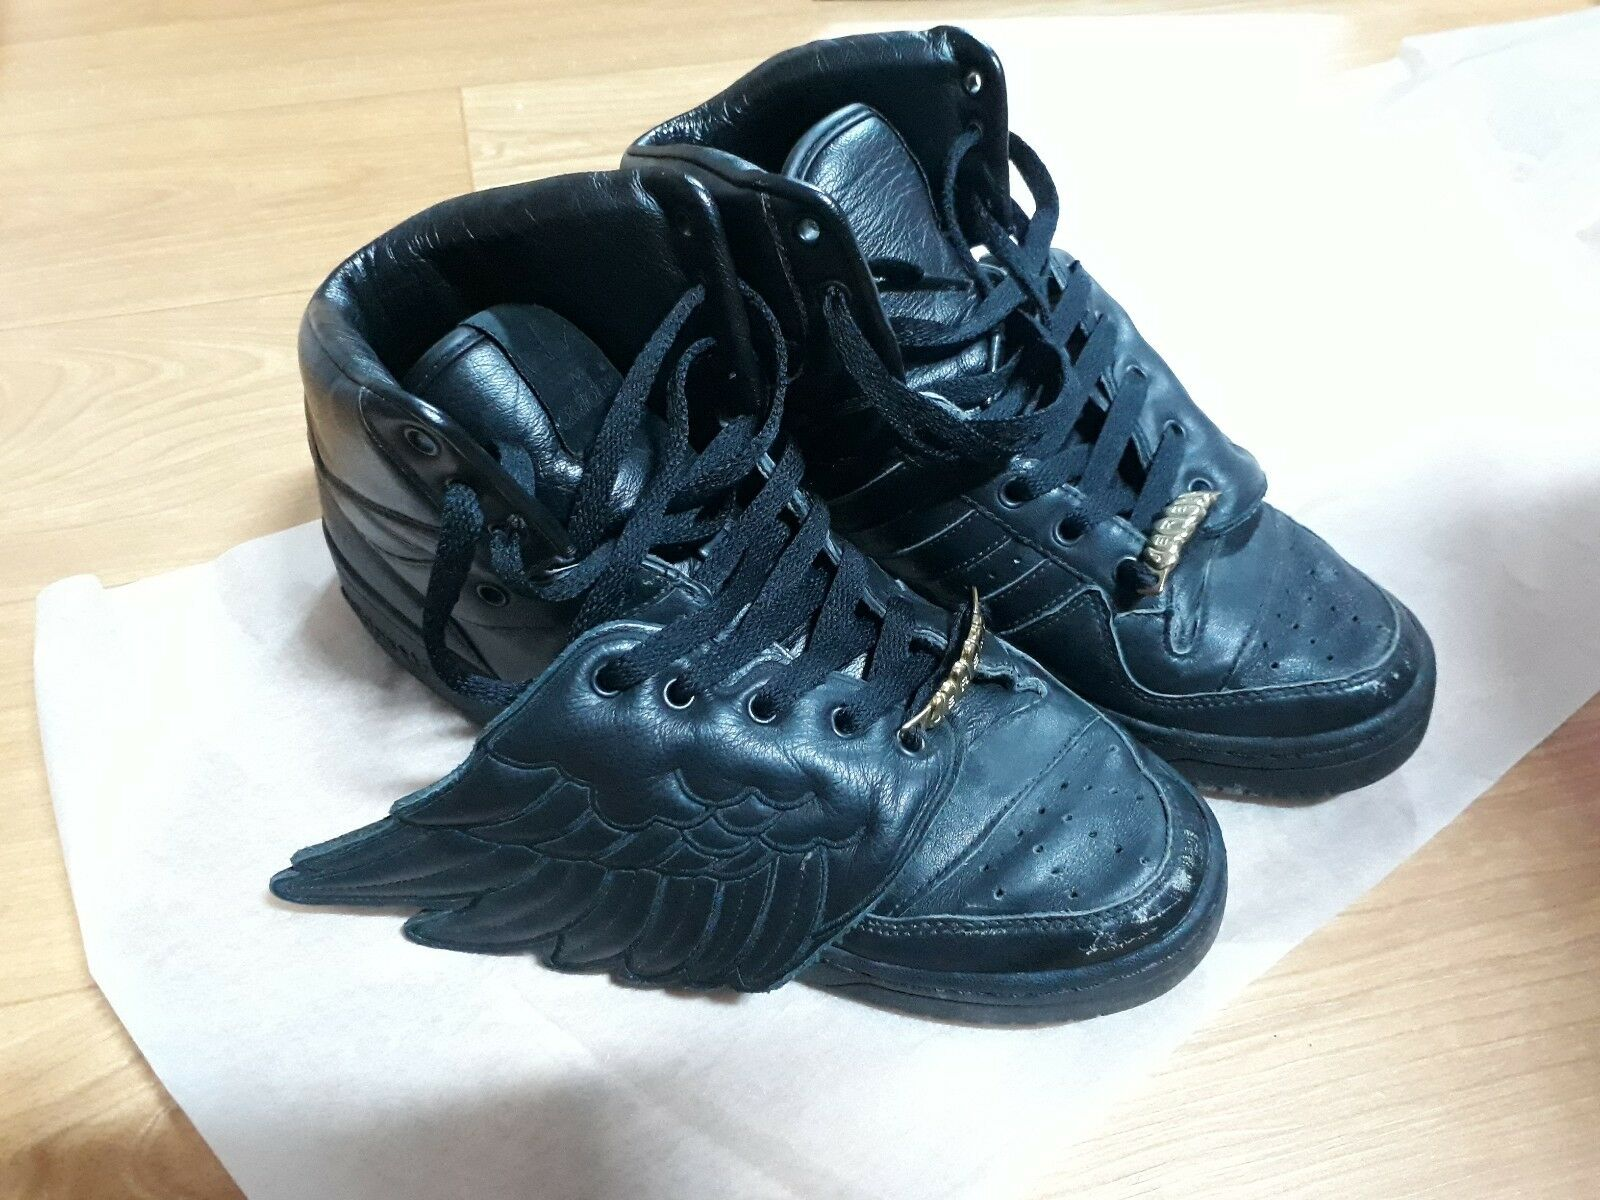 Adidas jeremy scott wings 9.5 black shoes gold pendant authentic - used